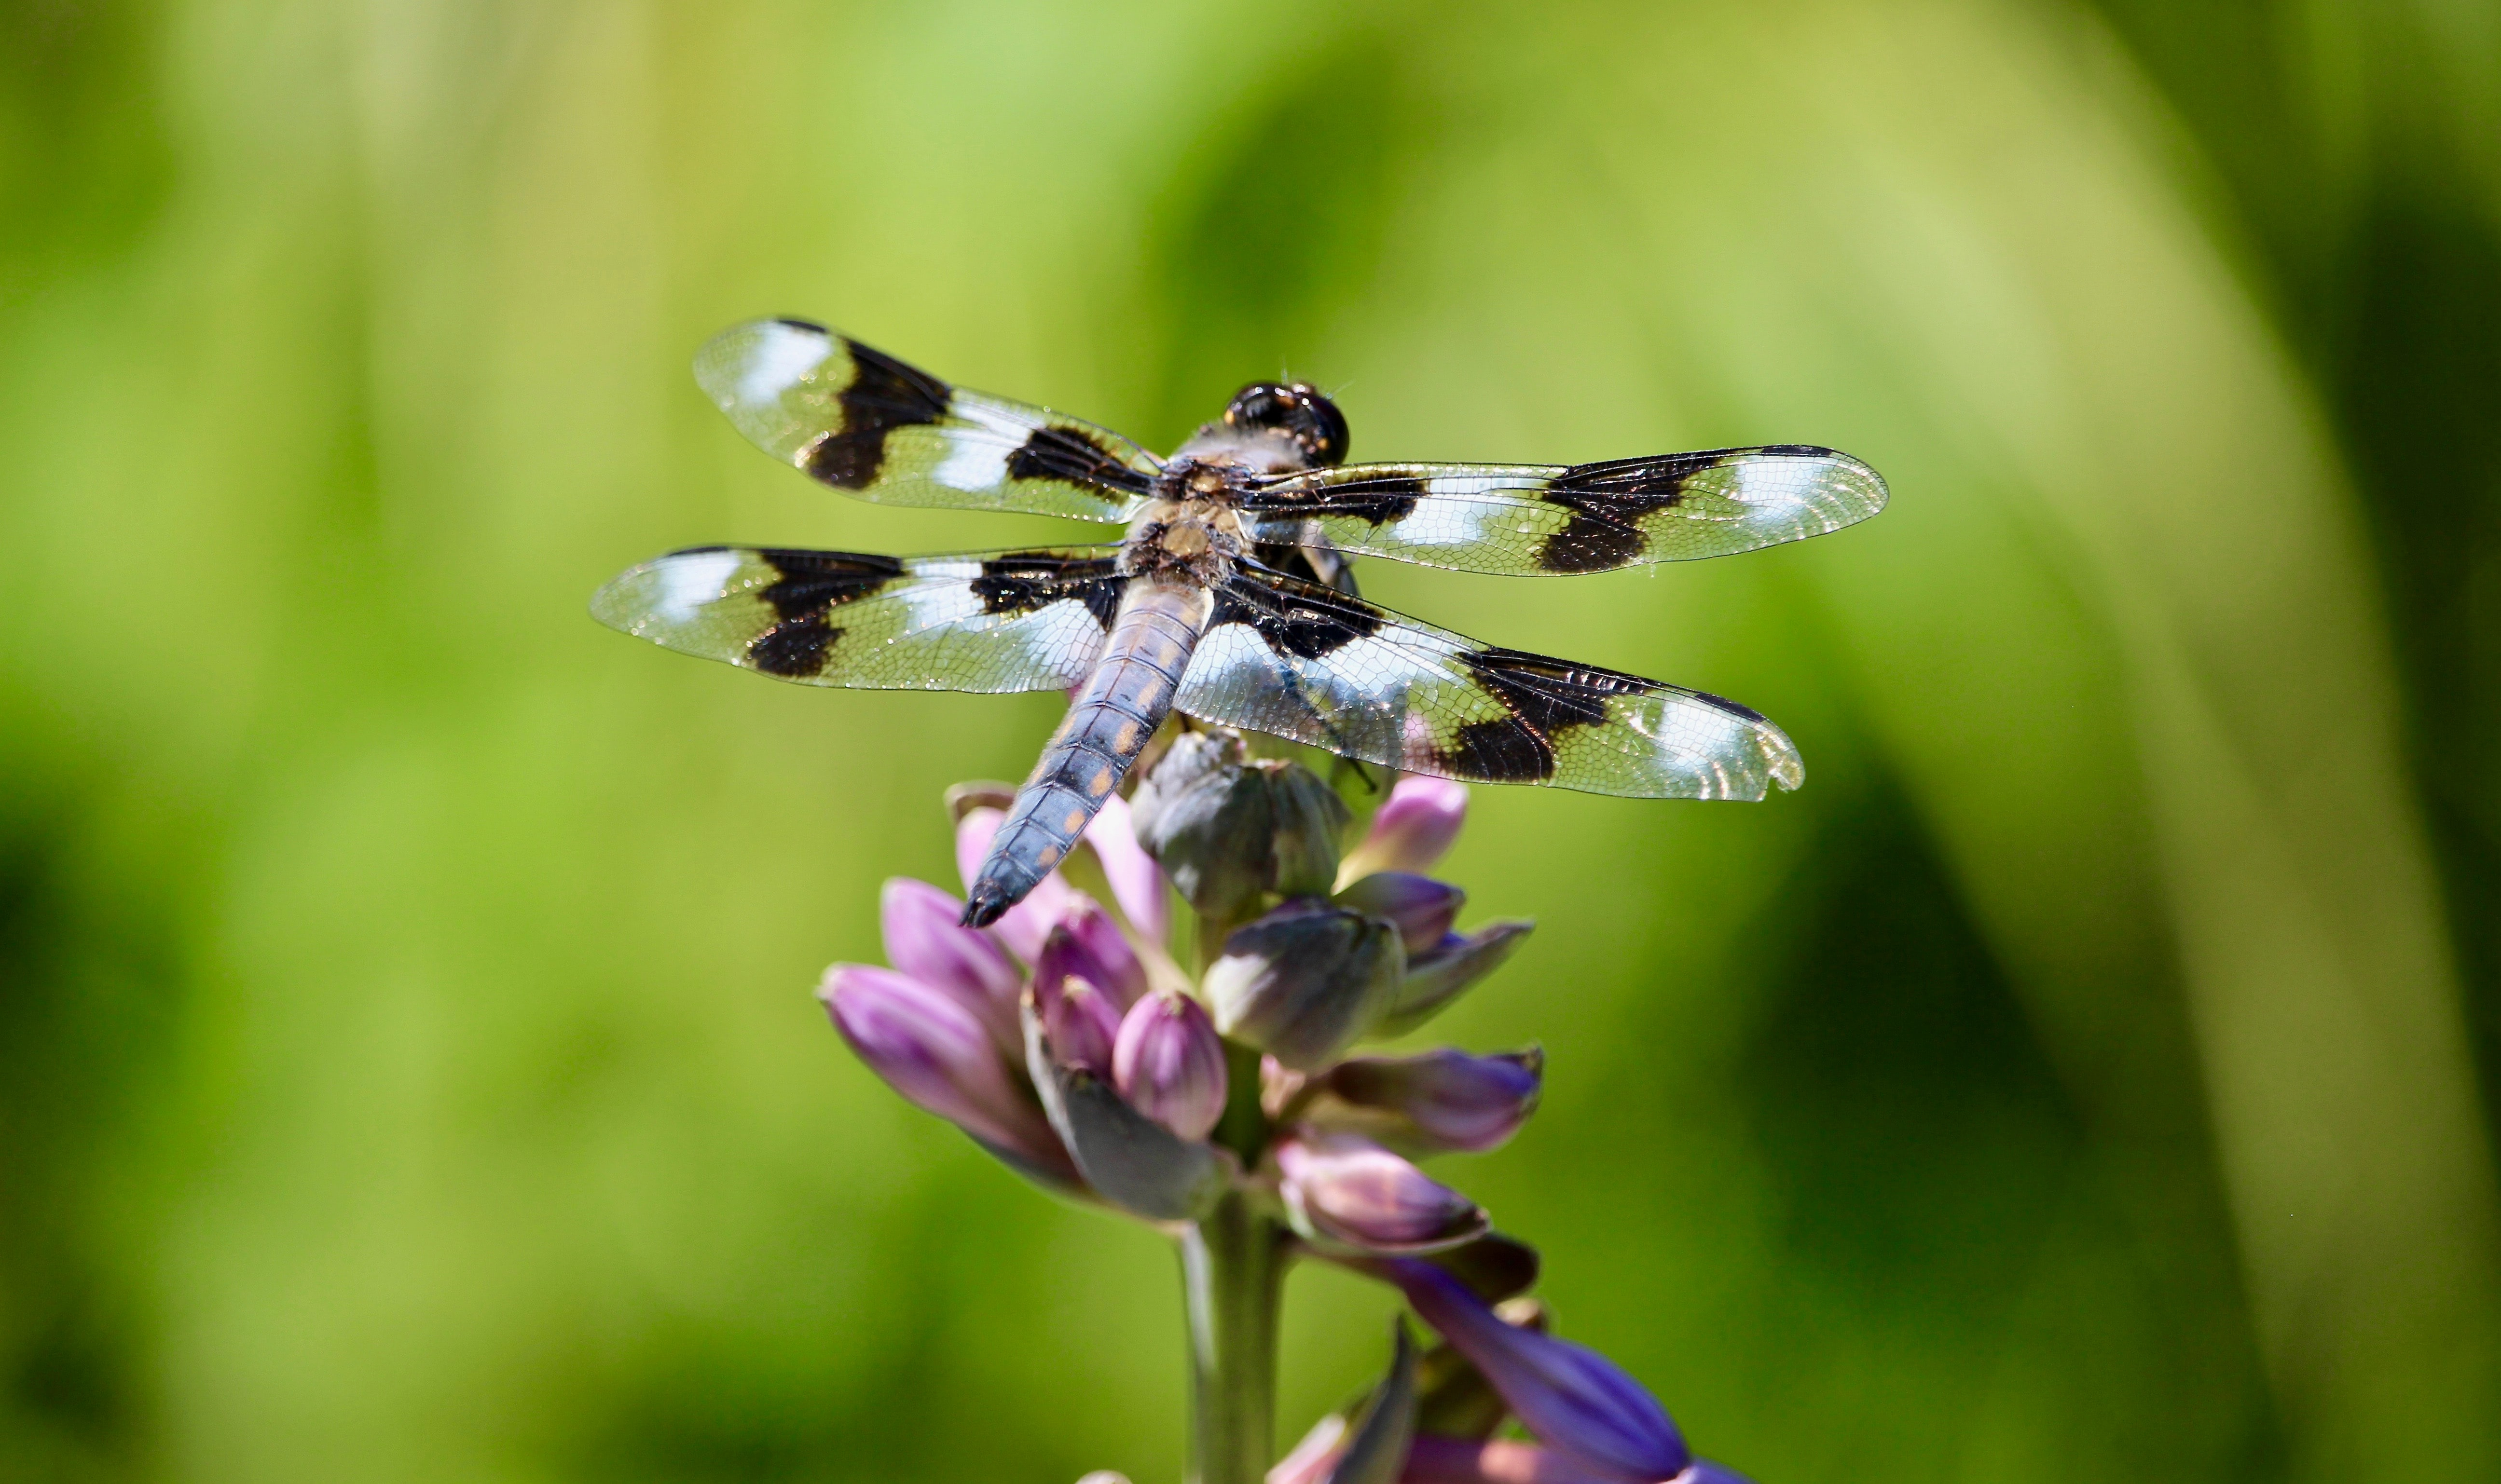 gray and black dragonfly on flower